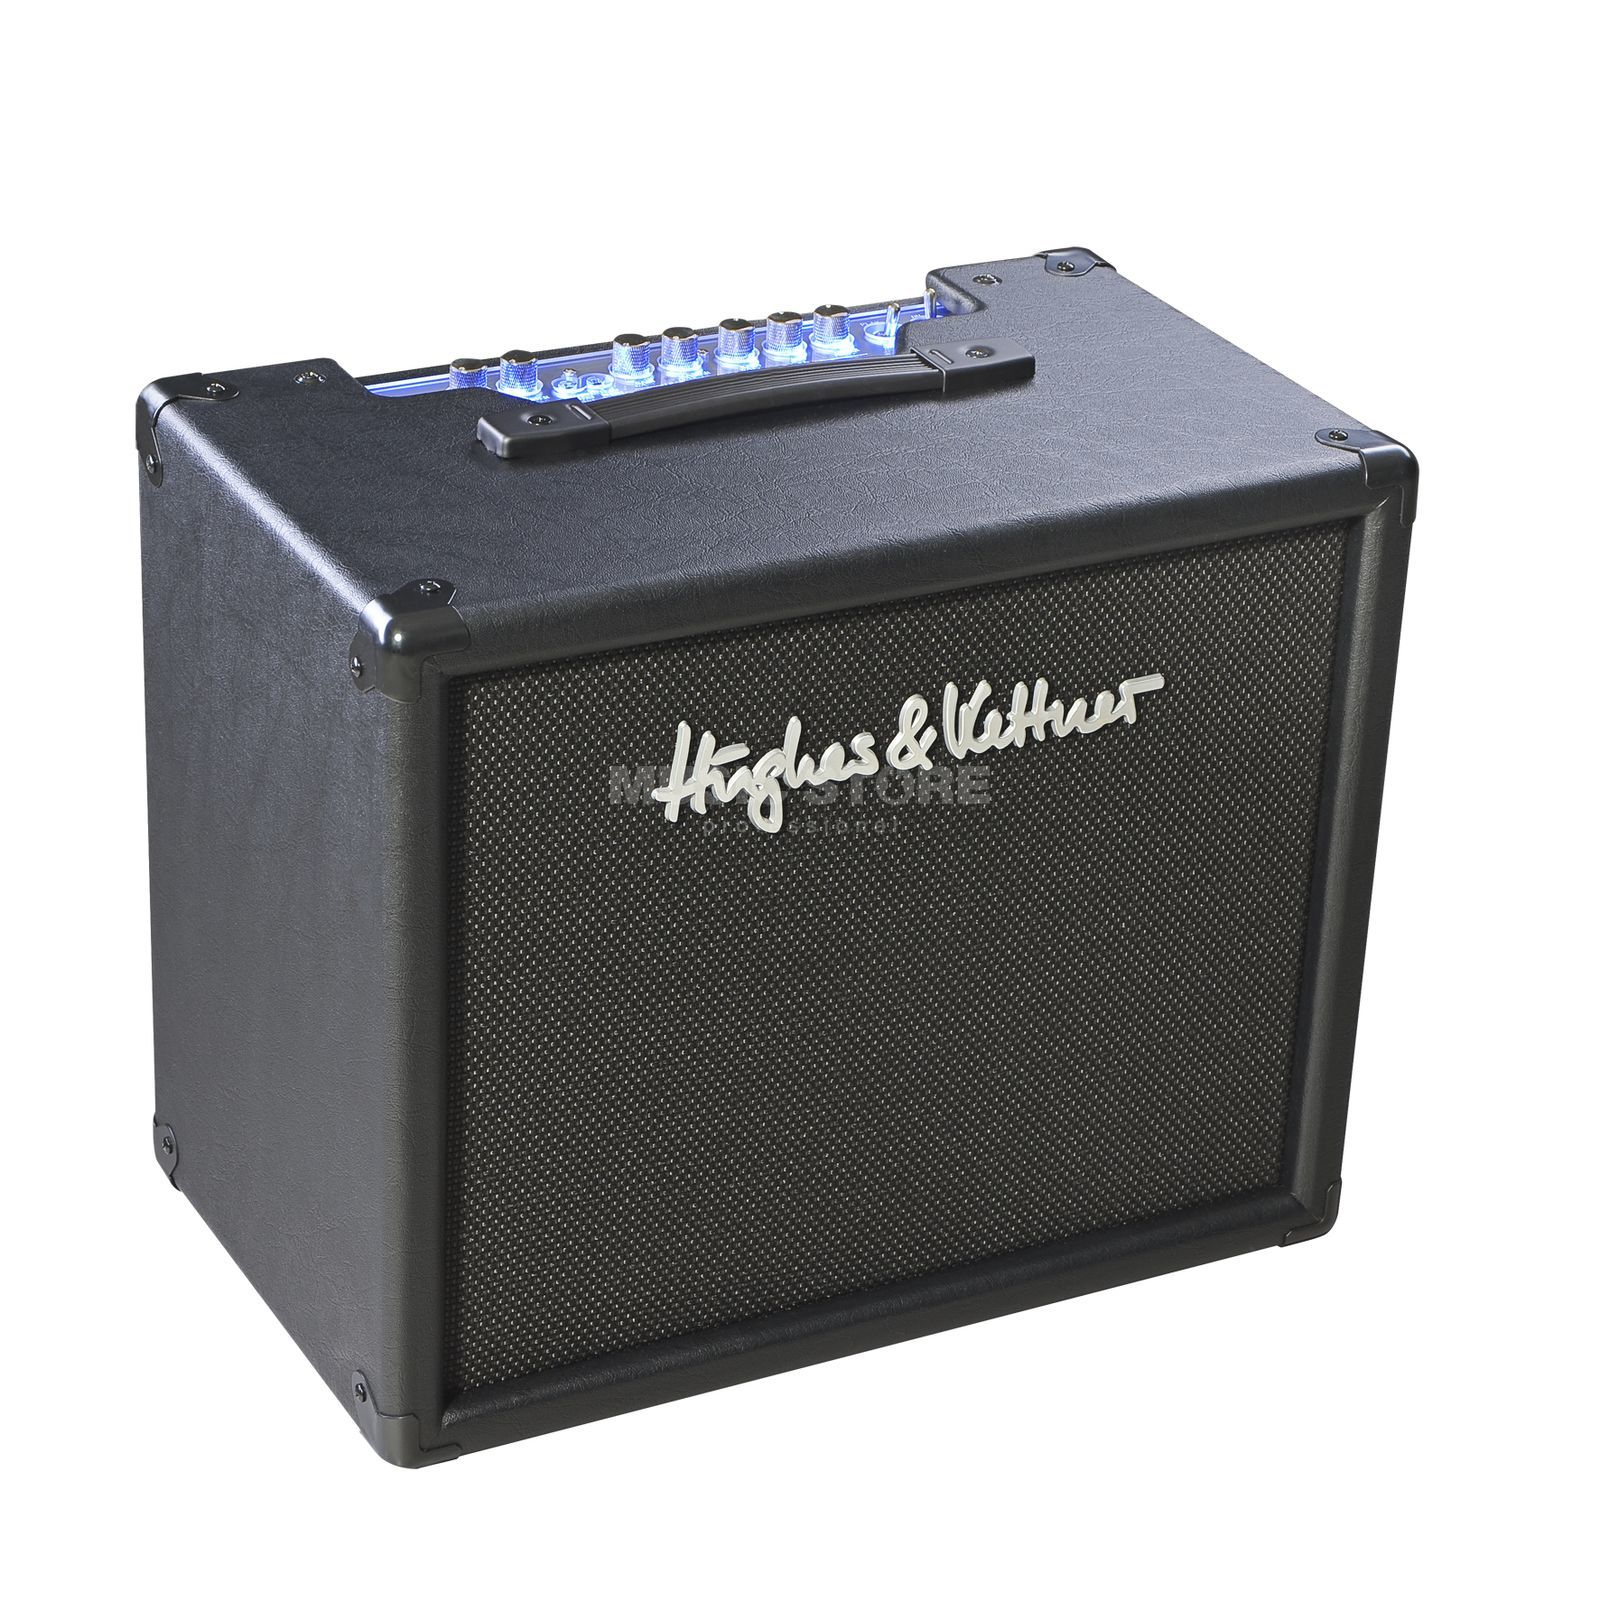 hughes kettner tubemeister 18 twelve combo dv247. Black Bedroom Furniture Sets. Home Design Ideas